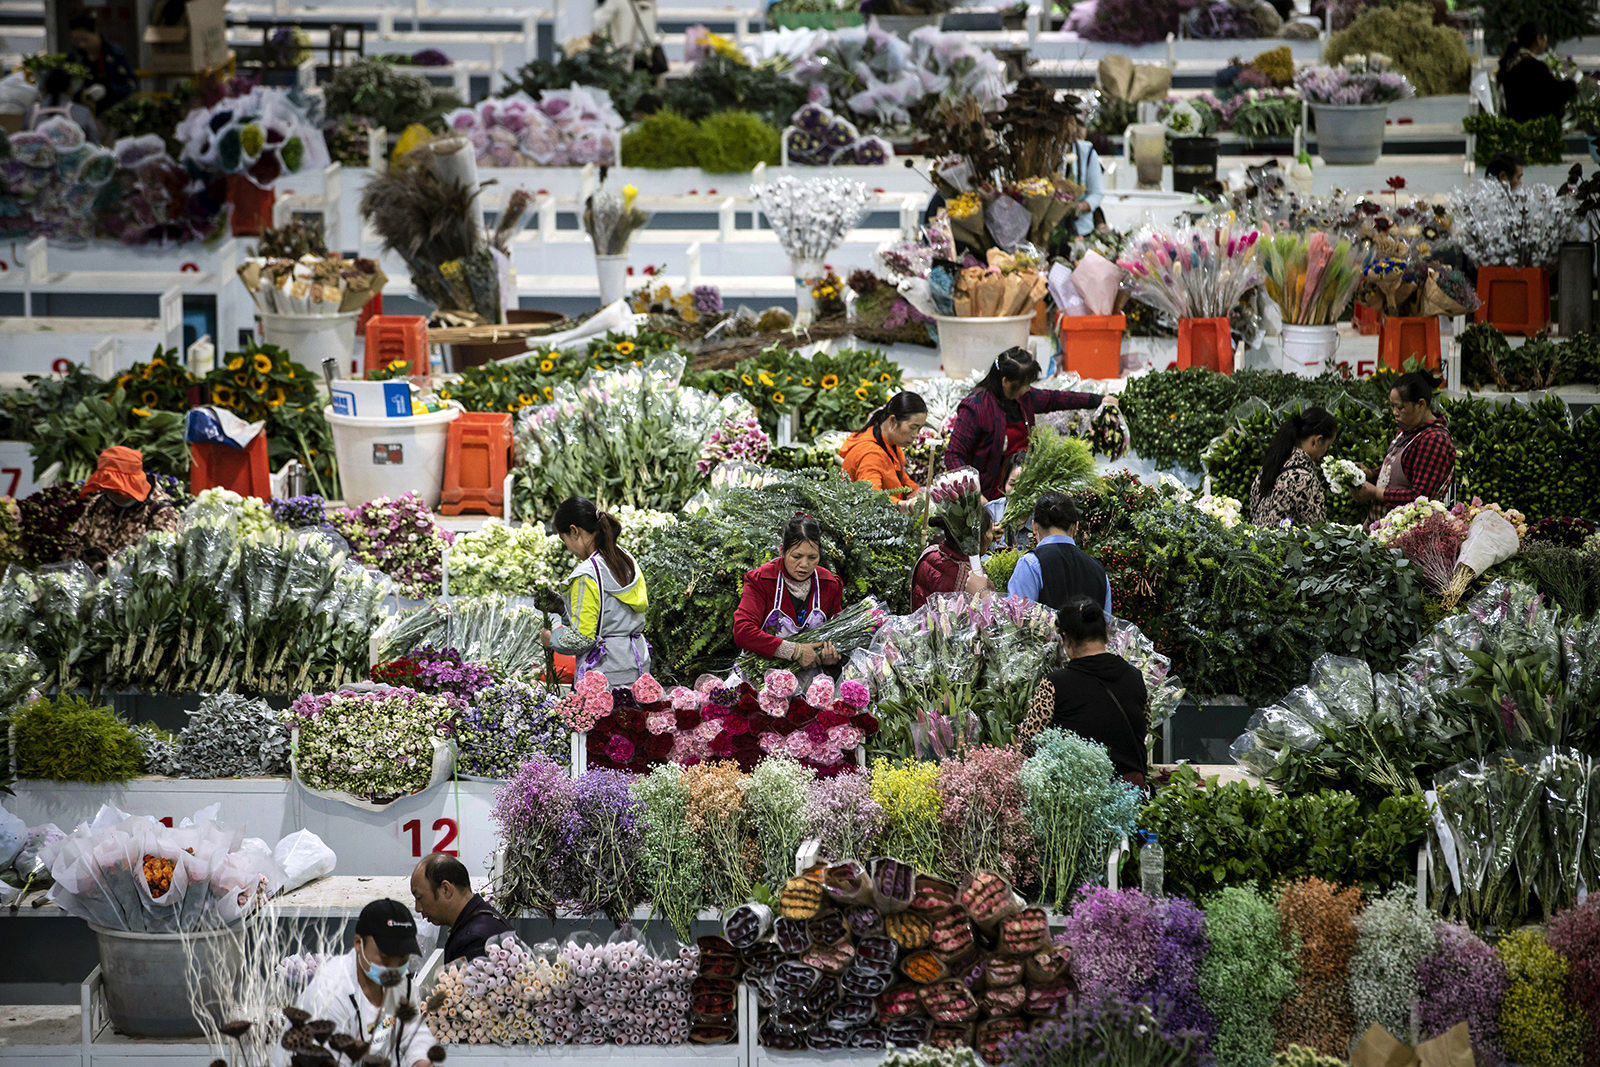 Vendors prepare for the start of the morning retail shift at the Dounan Flower Market in Kunming, Yunnan Province, China, on July 14.